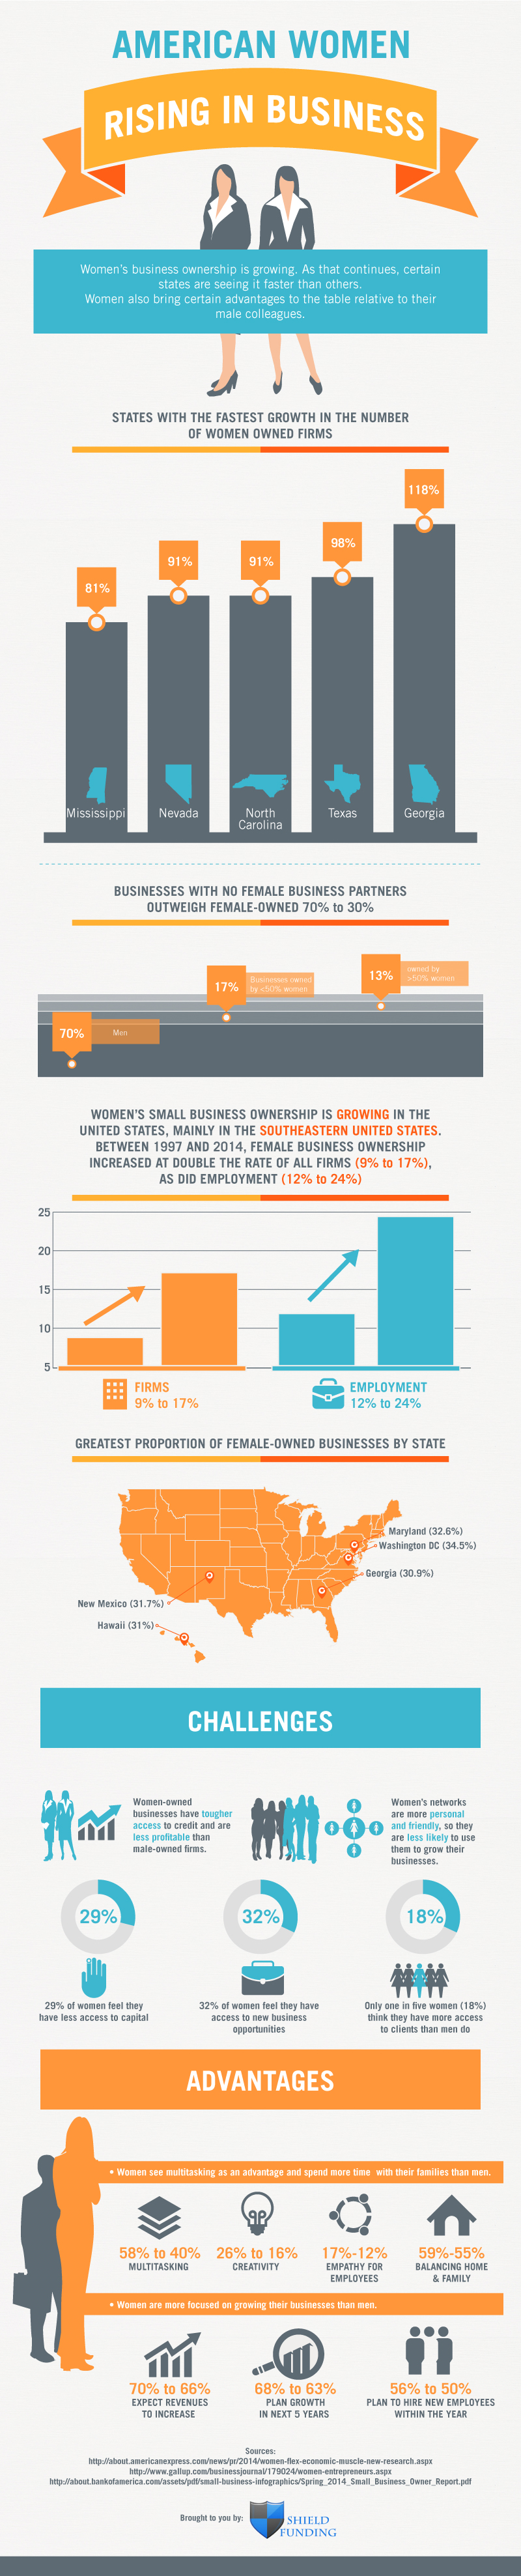 American Women Rising in Business by Shield Funding